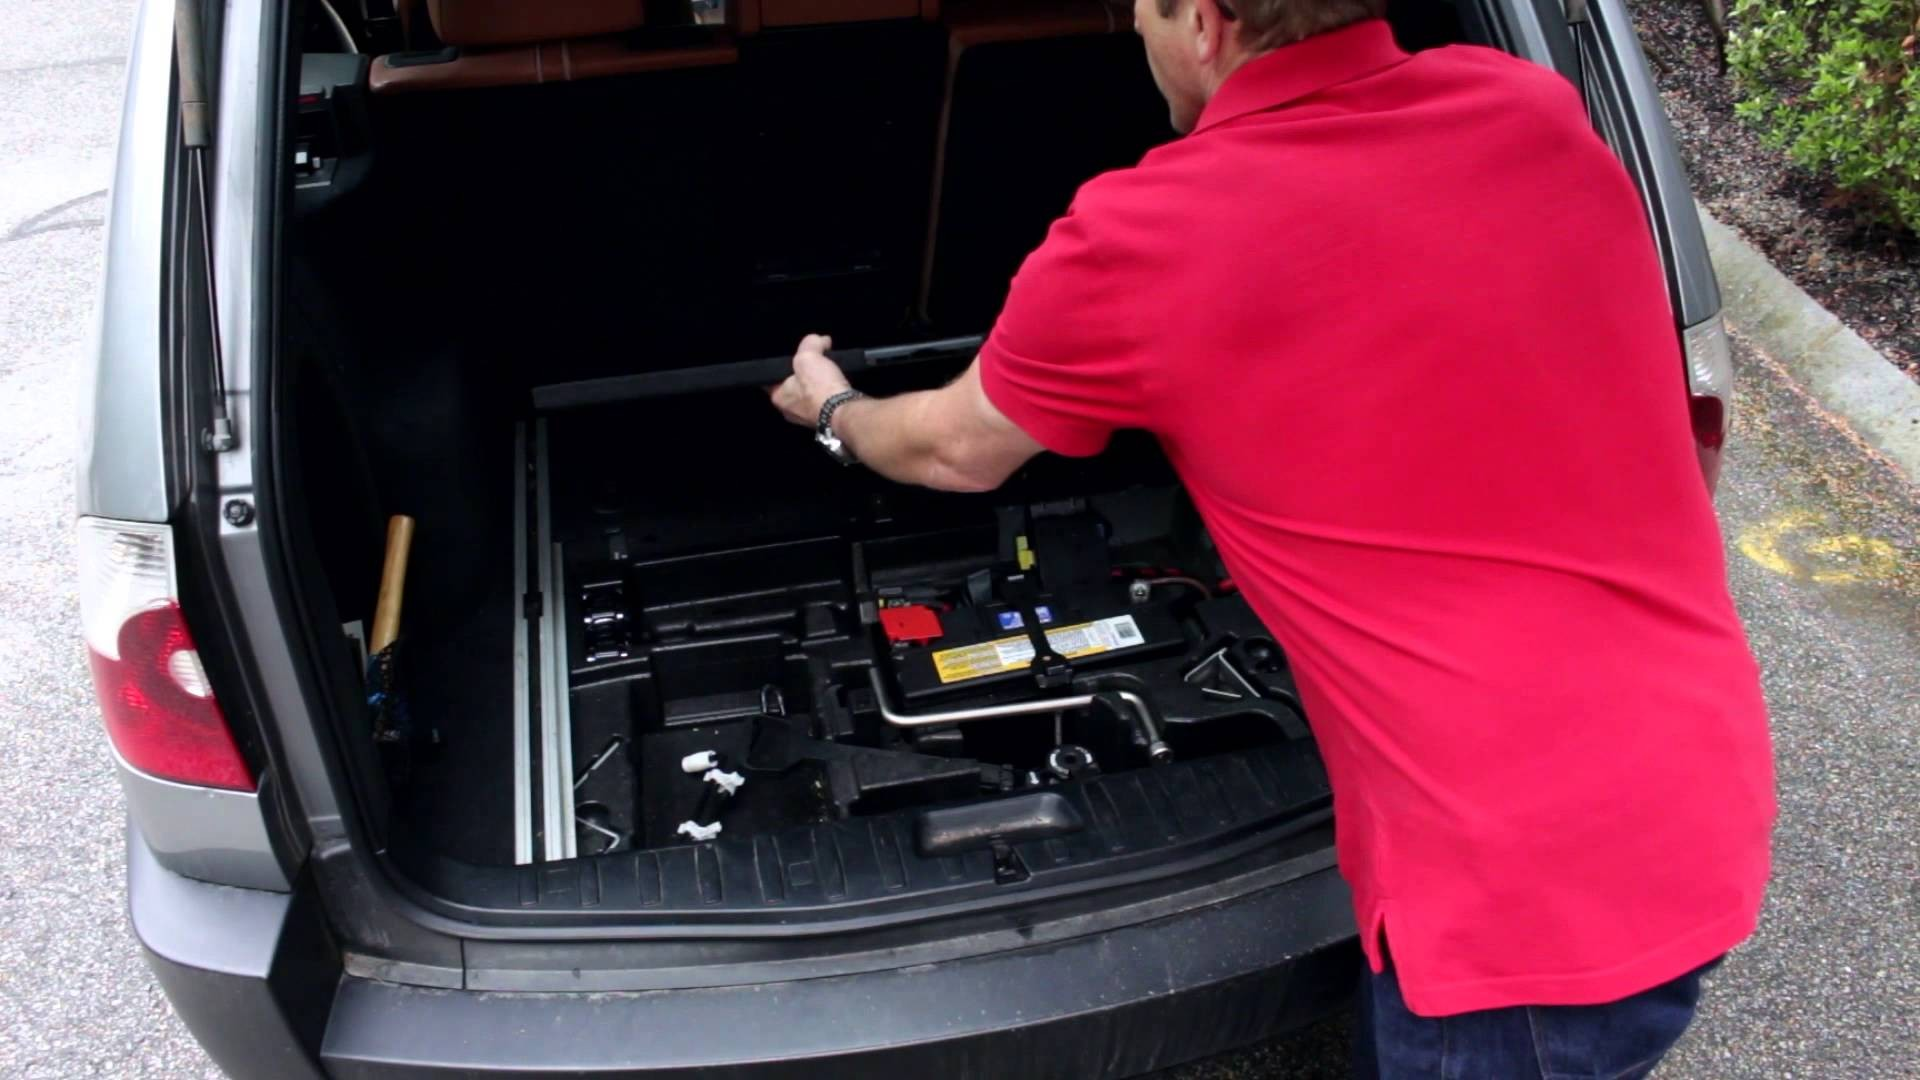 Diagram Of Car Tire How to Access and Remove the Spare Tire In A Bmw X3 E83 Of Diagram Of Car Tire